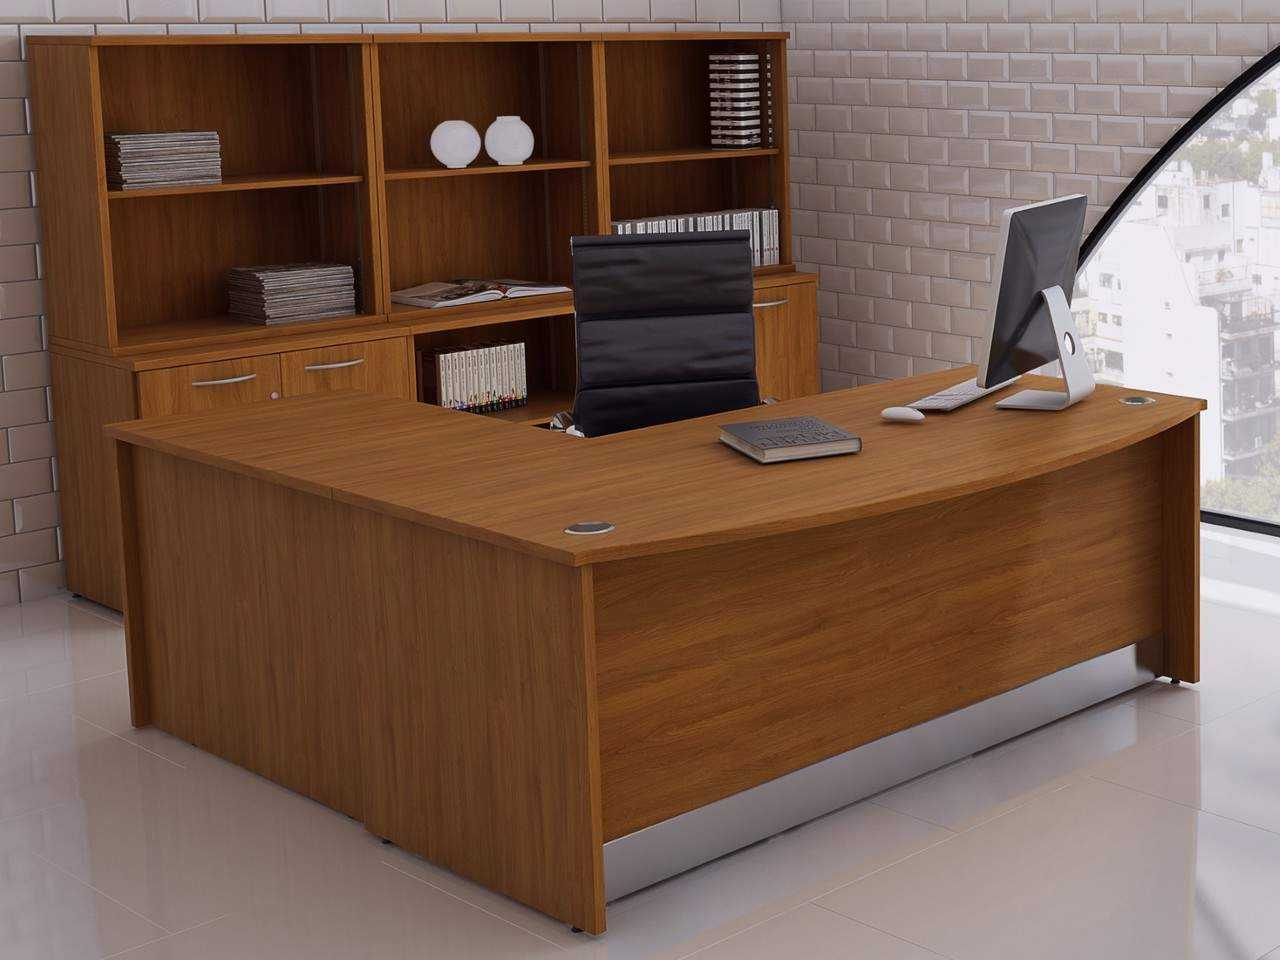 TCS nTree Empire Executive Bow Fronted Desk with Full Modesty Panel and Return Desk